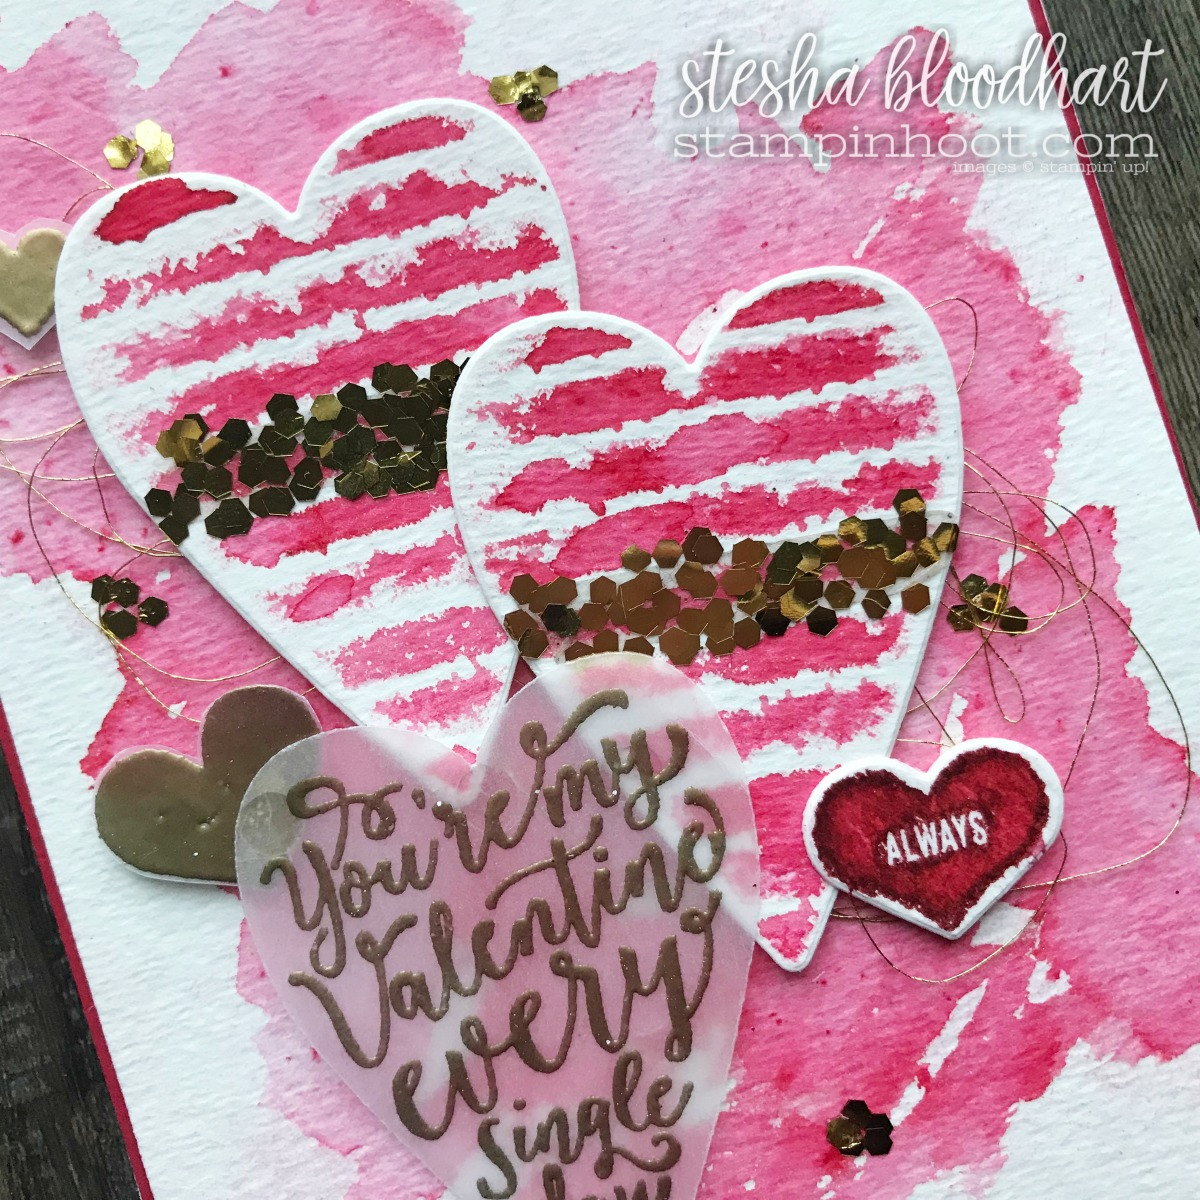 Sure Do Love You Bundle and Heart Happiness Stamp Set from the 2018 Occasions Catalog Card Created for the January 2018 Pals Blog Hop Card Created by Stesha Bloodhart, Stampin' Hoot! #palsbloghop #steshabloodhart #stampinhoot